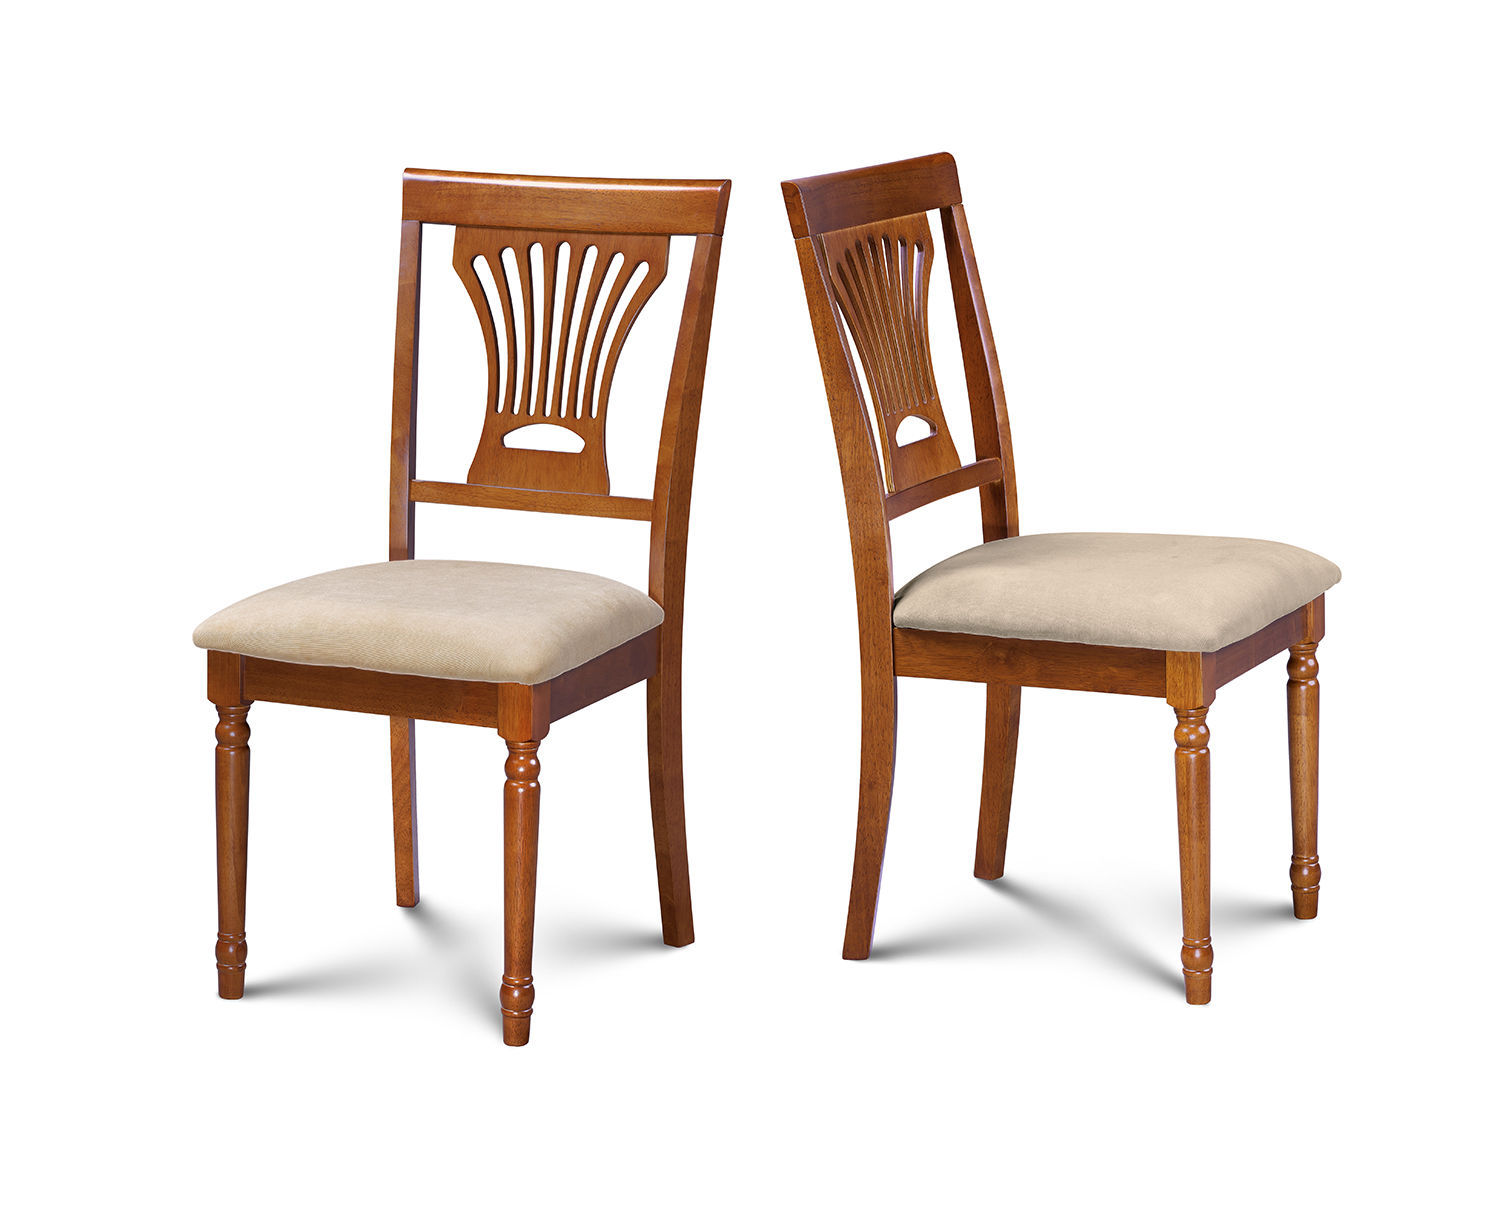 SETOF 2 DINING SIDE CHAIR with SOFT-PADDED SEAT IN SADDLE BROWN